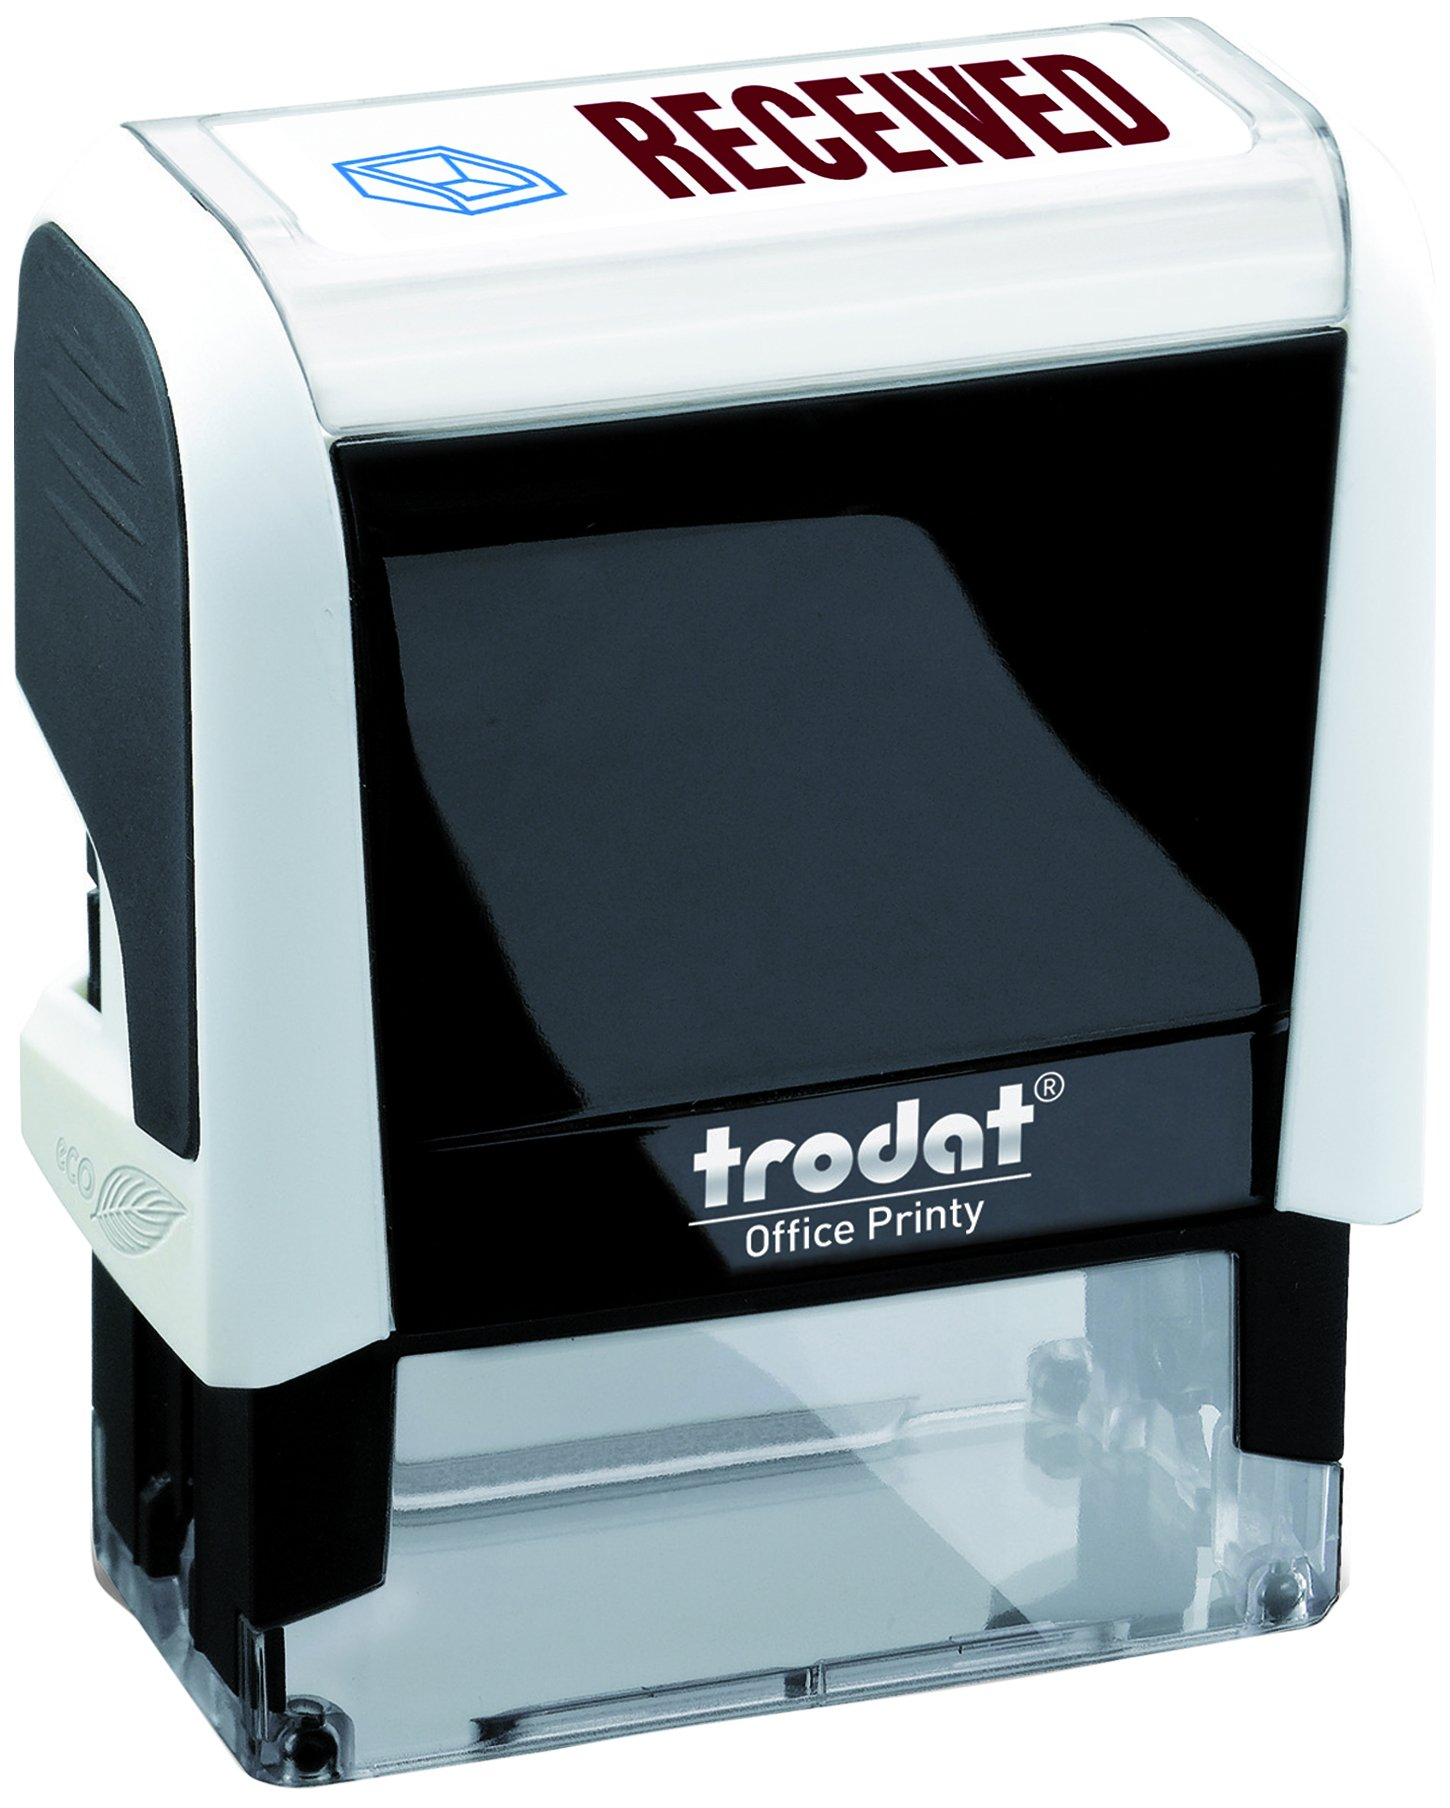 Trodat Office Printy Received Word Stamp